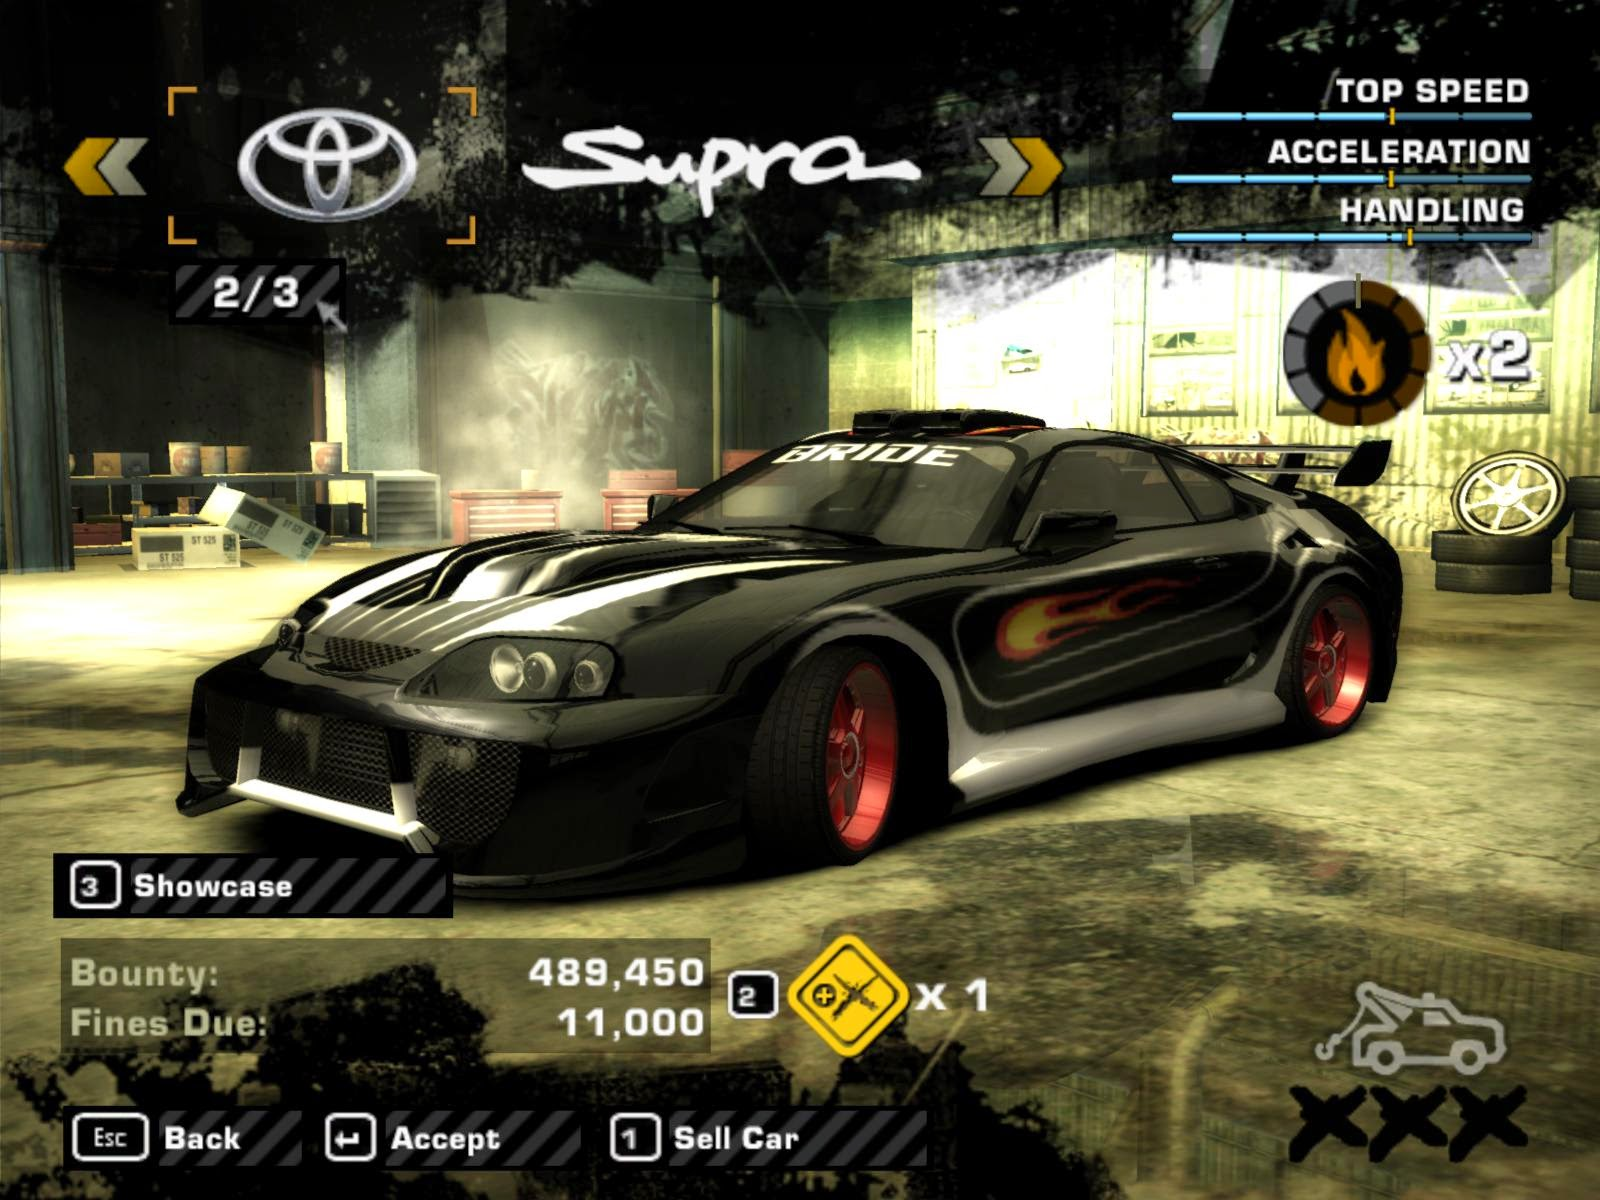 Need for speed most wanted 2005 new cars pack + cars with 600km/h.